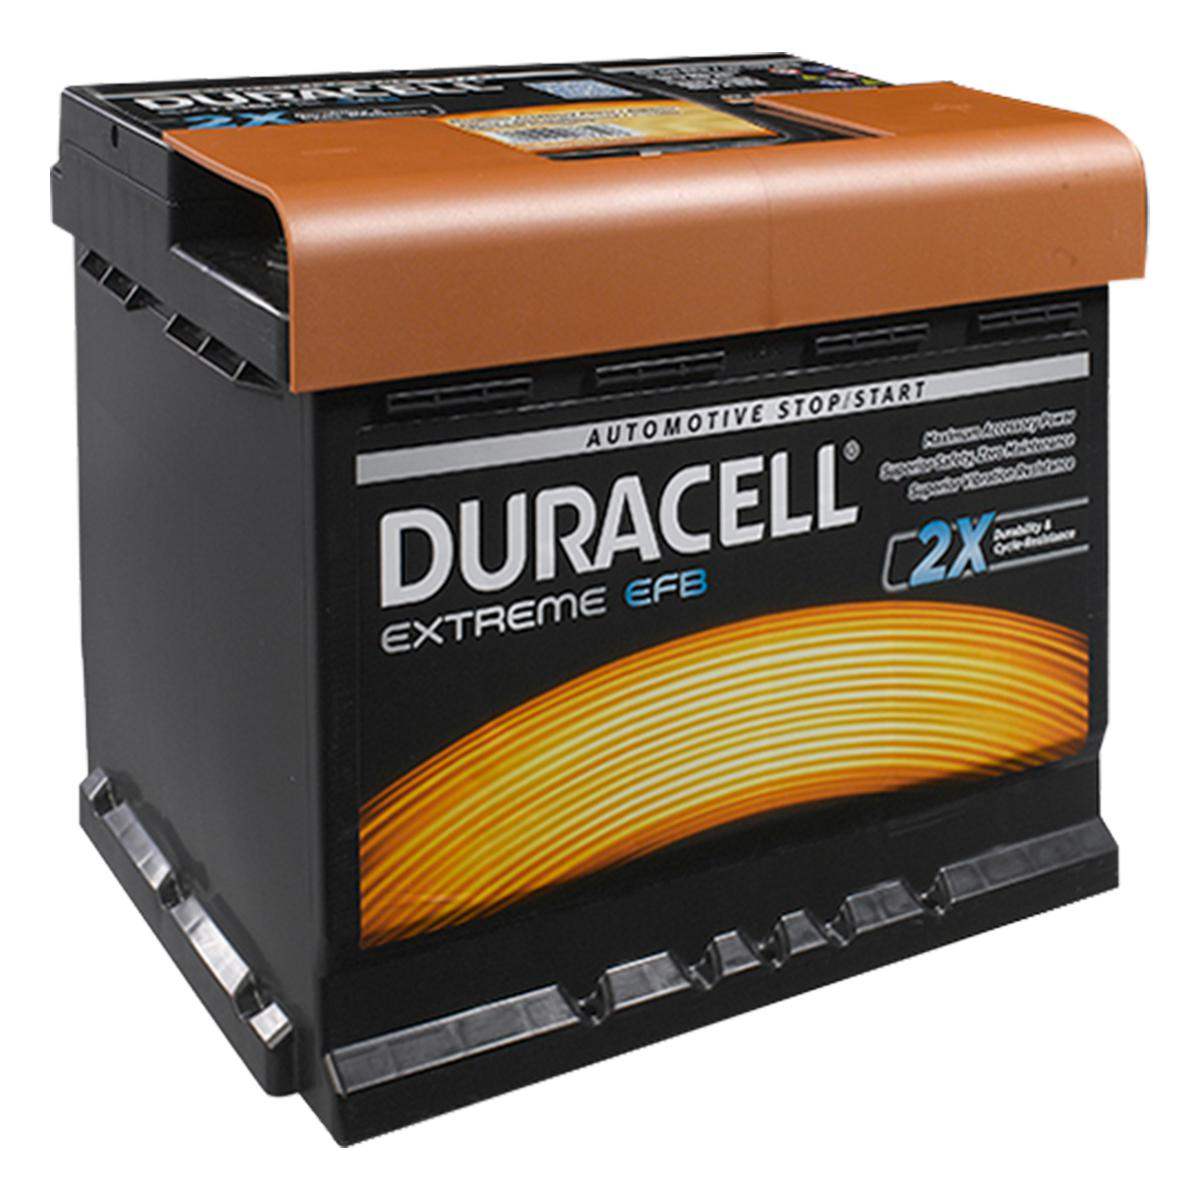 Duracell Extreme EFB